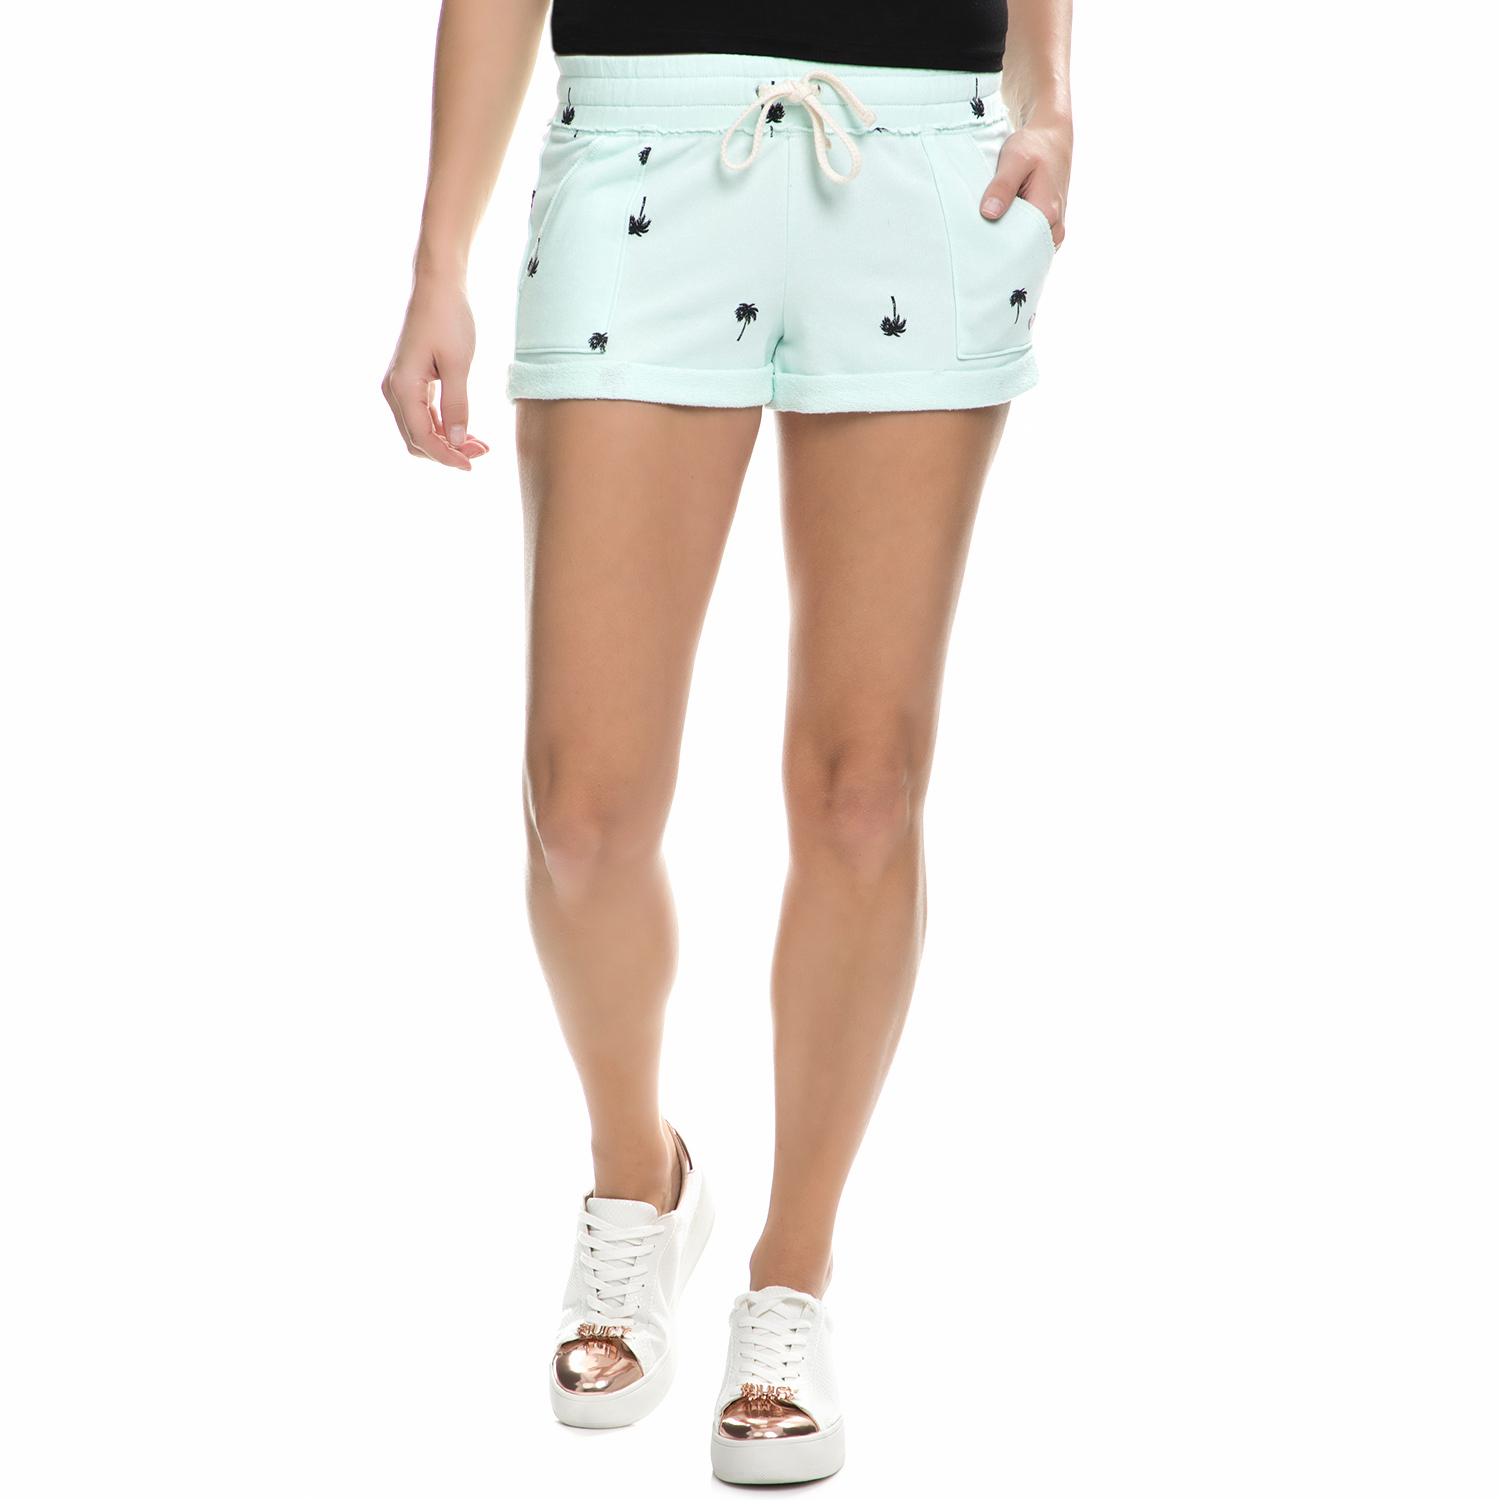 JUICY COUTURE - Γυναικείο σορτς Juicy Couture PALM TREE TERRY ROLL γαλάζιο γυναικεία ρούχα σορτς βερμούδες casual jean